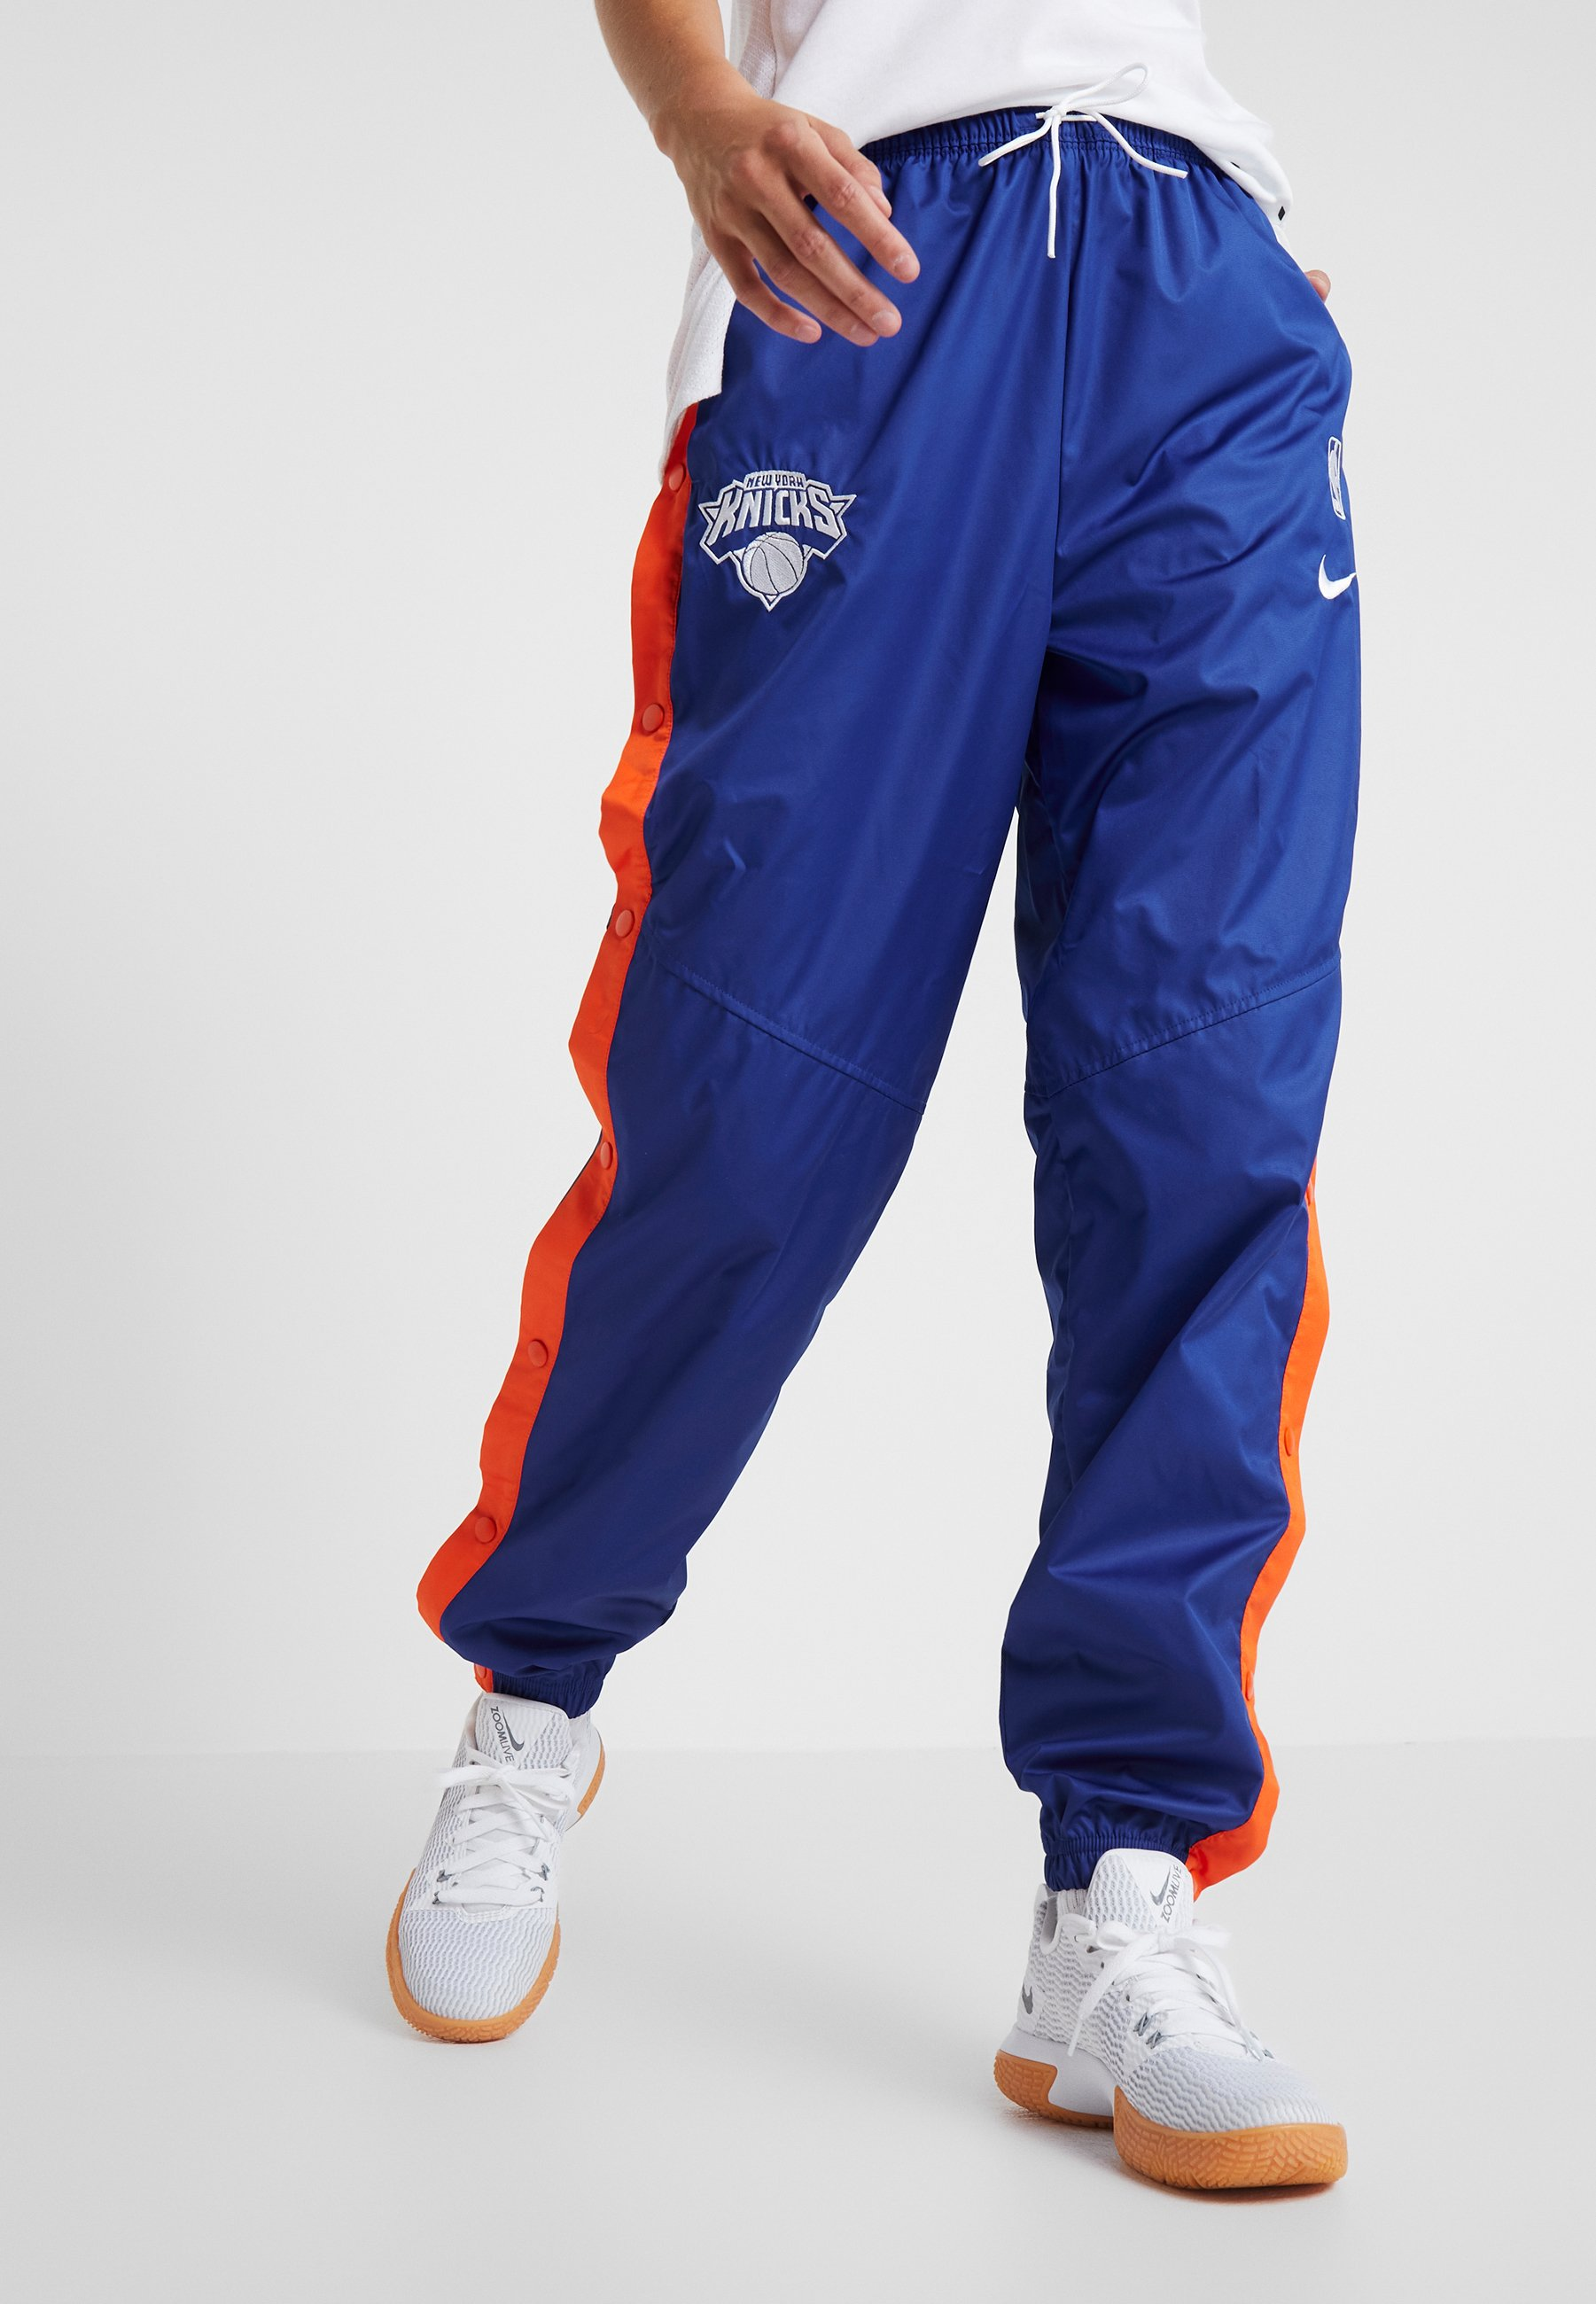 NBA NEW YORK KNICKS WOMENS SNAP PANT Fanartikel rush bluebrilliant ornge